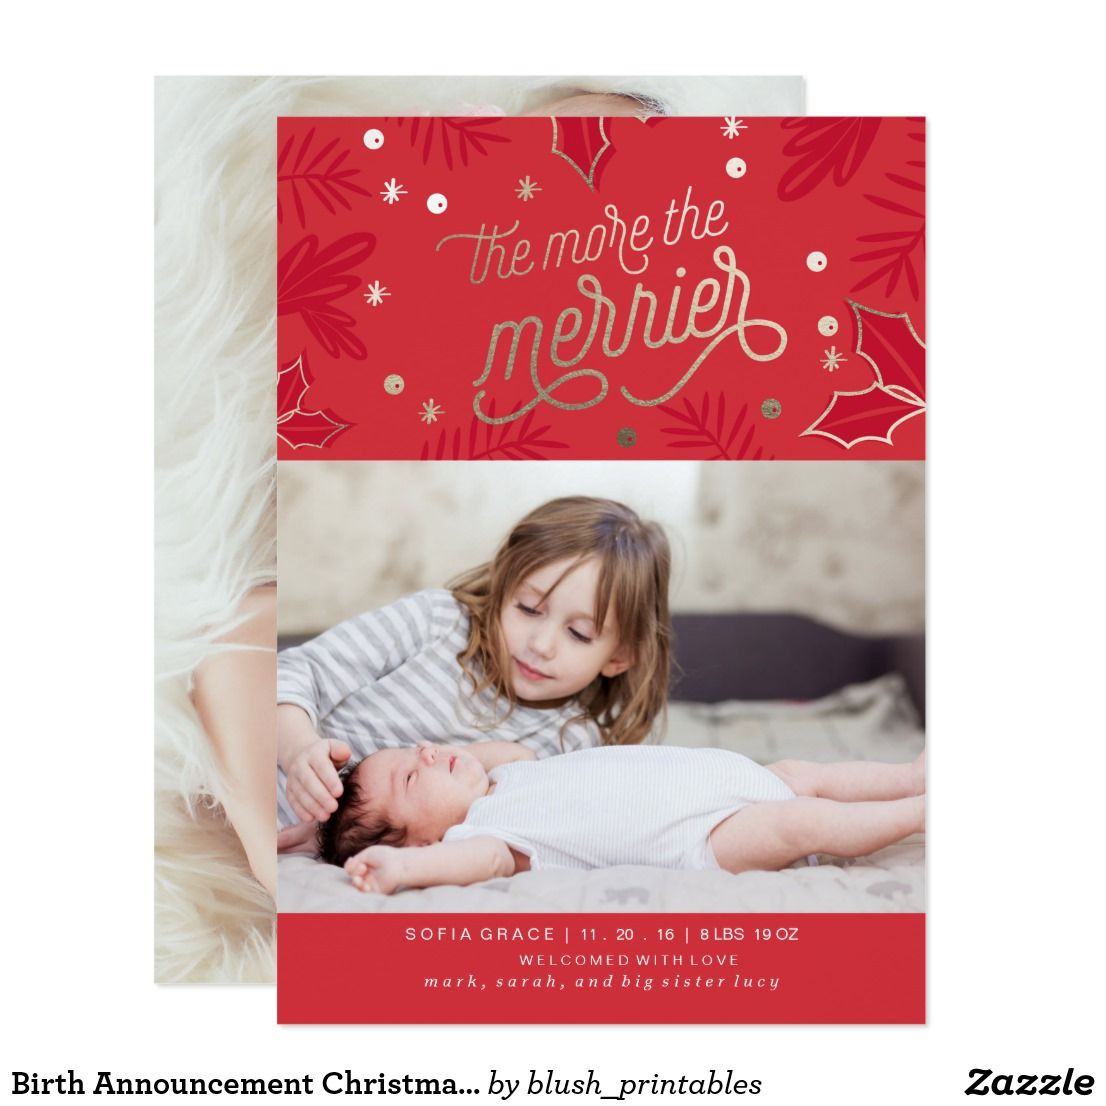 Birth Announcement Christmas Card | Blush For Zazzle | Pinterest